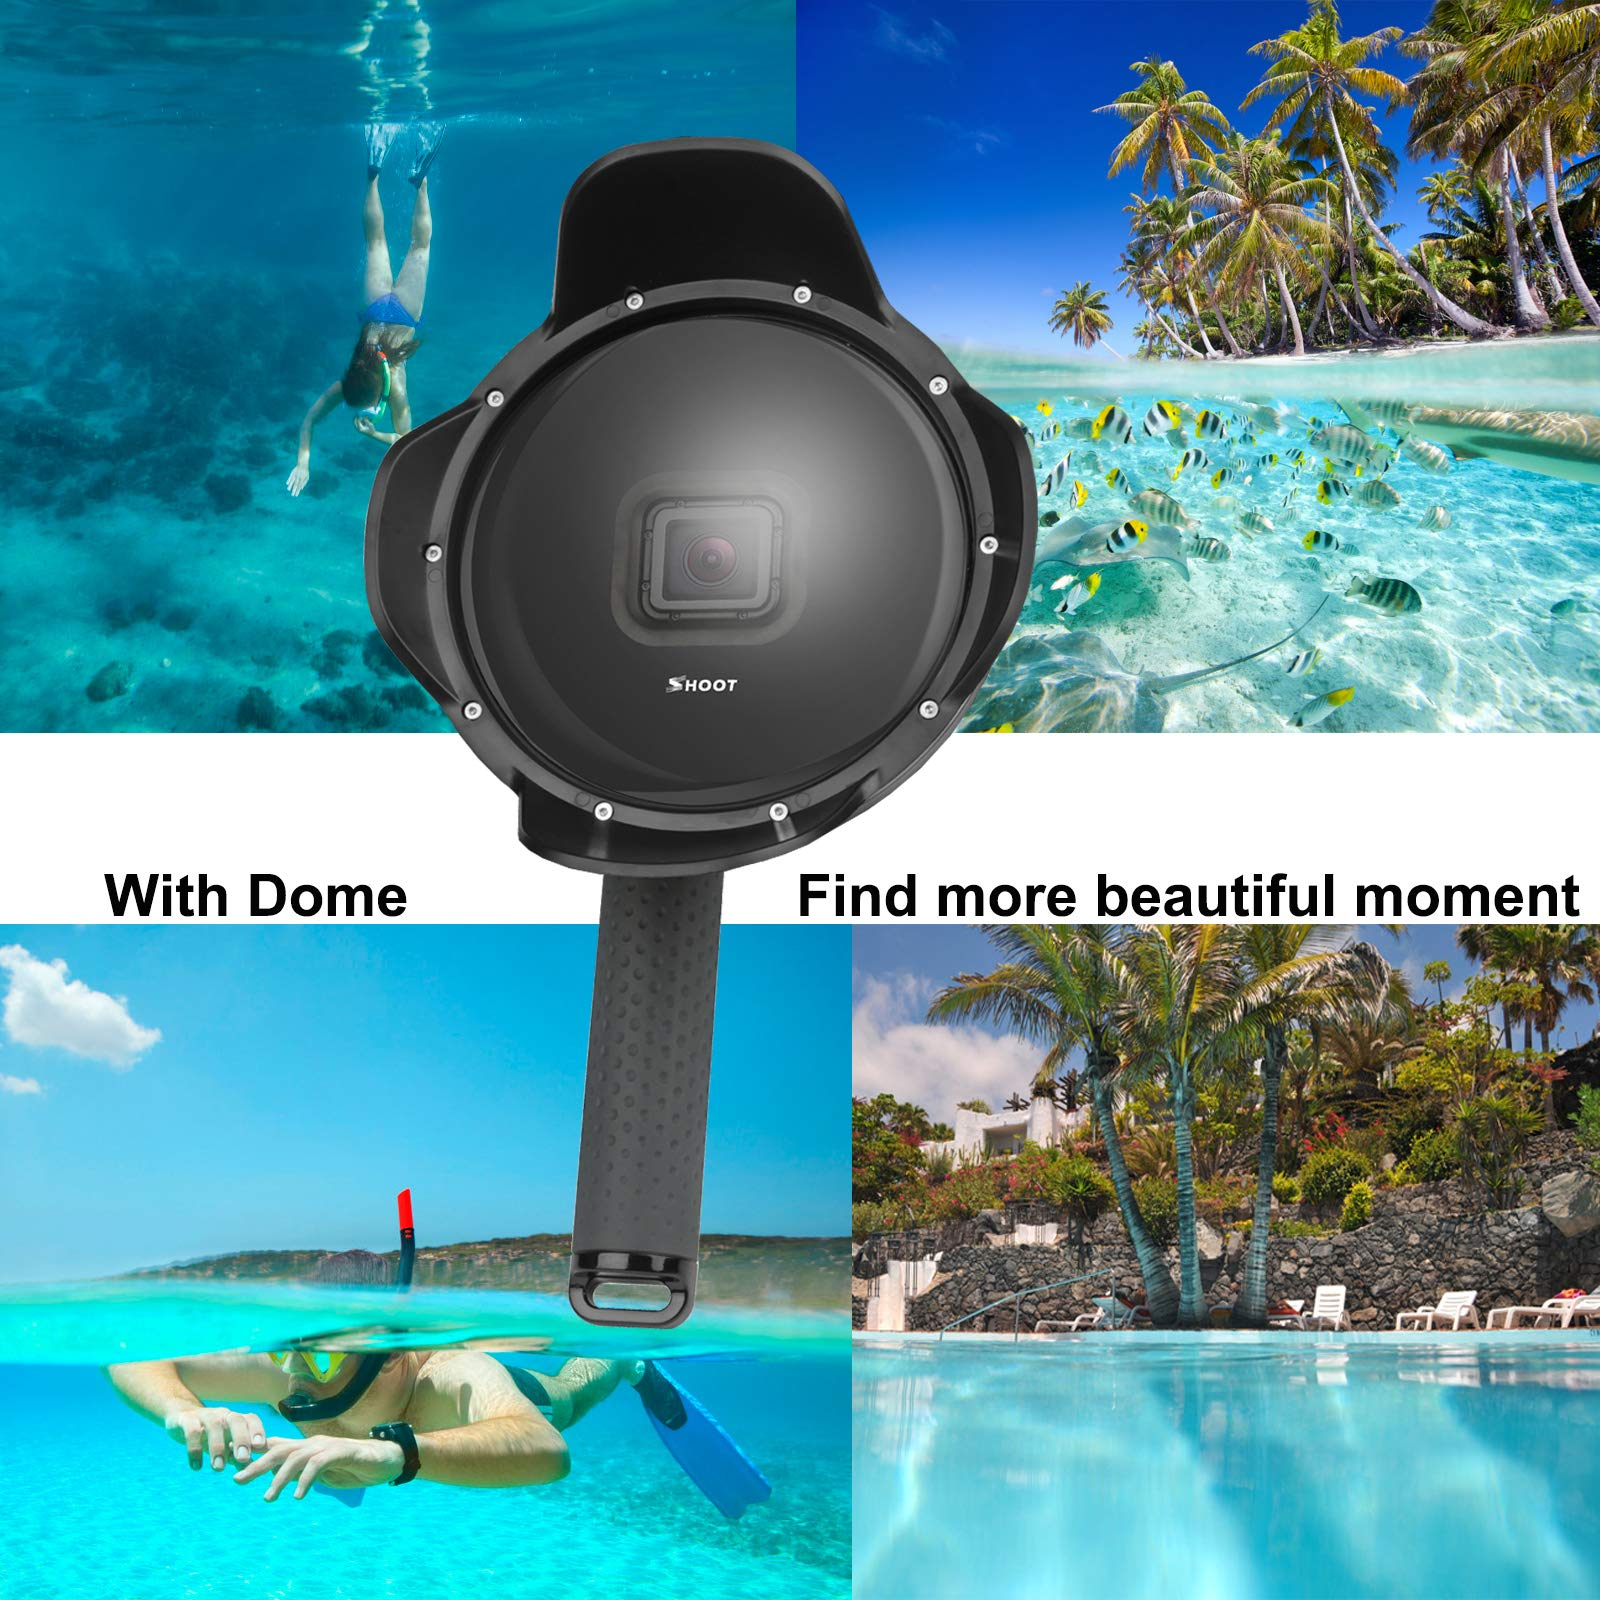 Gurmoir Shoot 6'' Dome Lens Hood Dome Port for Gopro Hero 7 Black/Hero 6/Hero 5/Hero (2018) Action Cameras Snorkeling Underwater Diving Dome with Waterproof Housing Case with Soft Rubber Floating Grip by Gurmoir (Image #5)